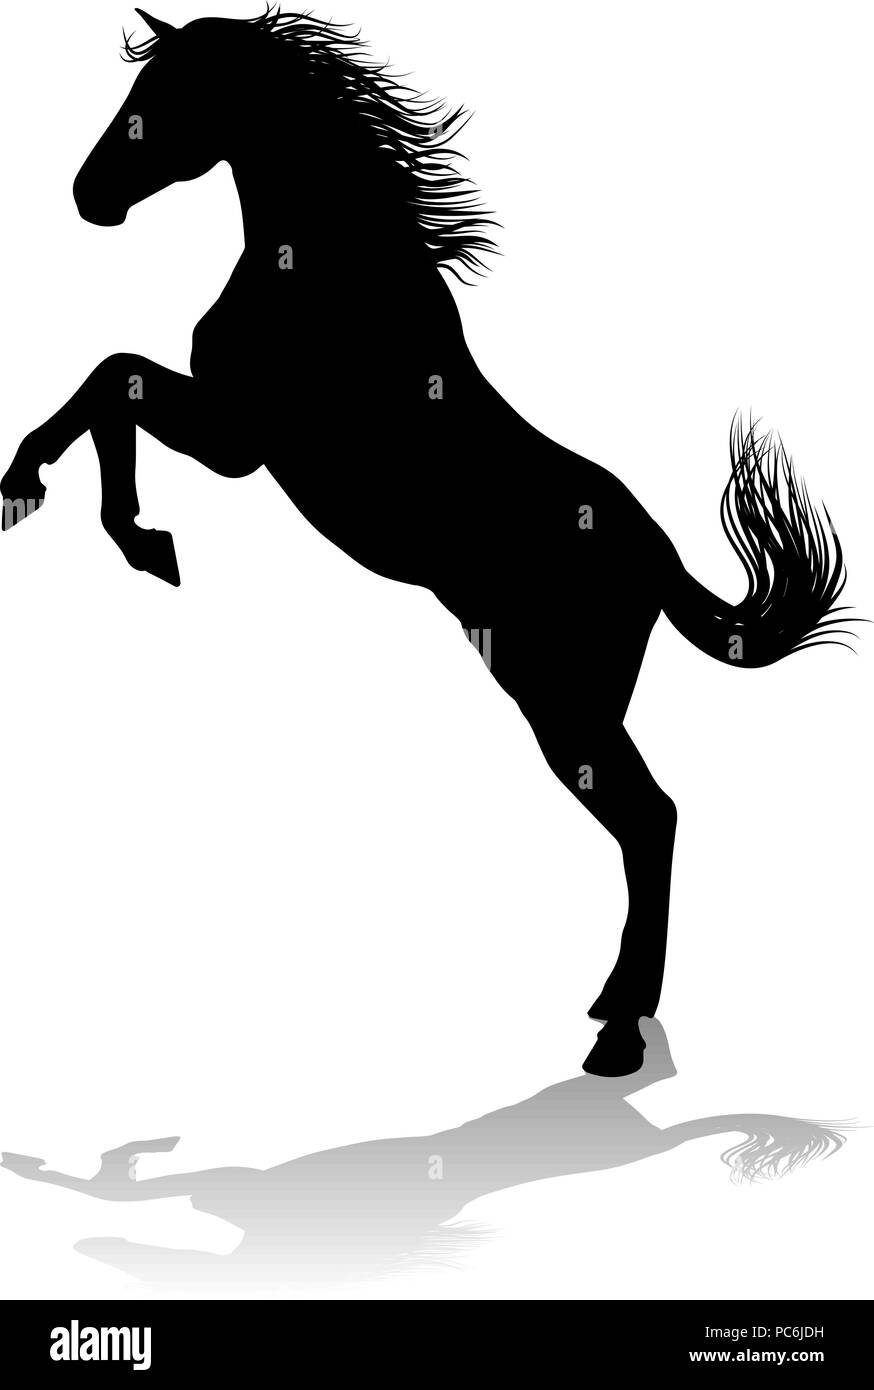 Bucking Horse Silhouette High Resolution Stock Photography And Images Alamy